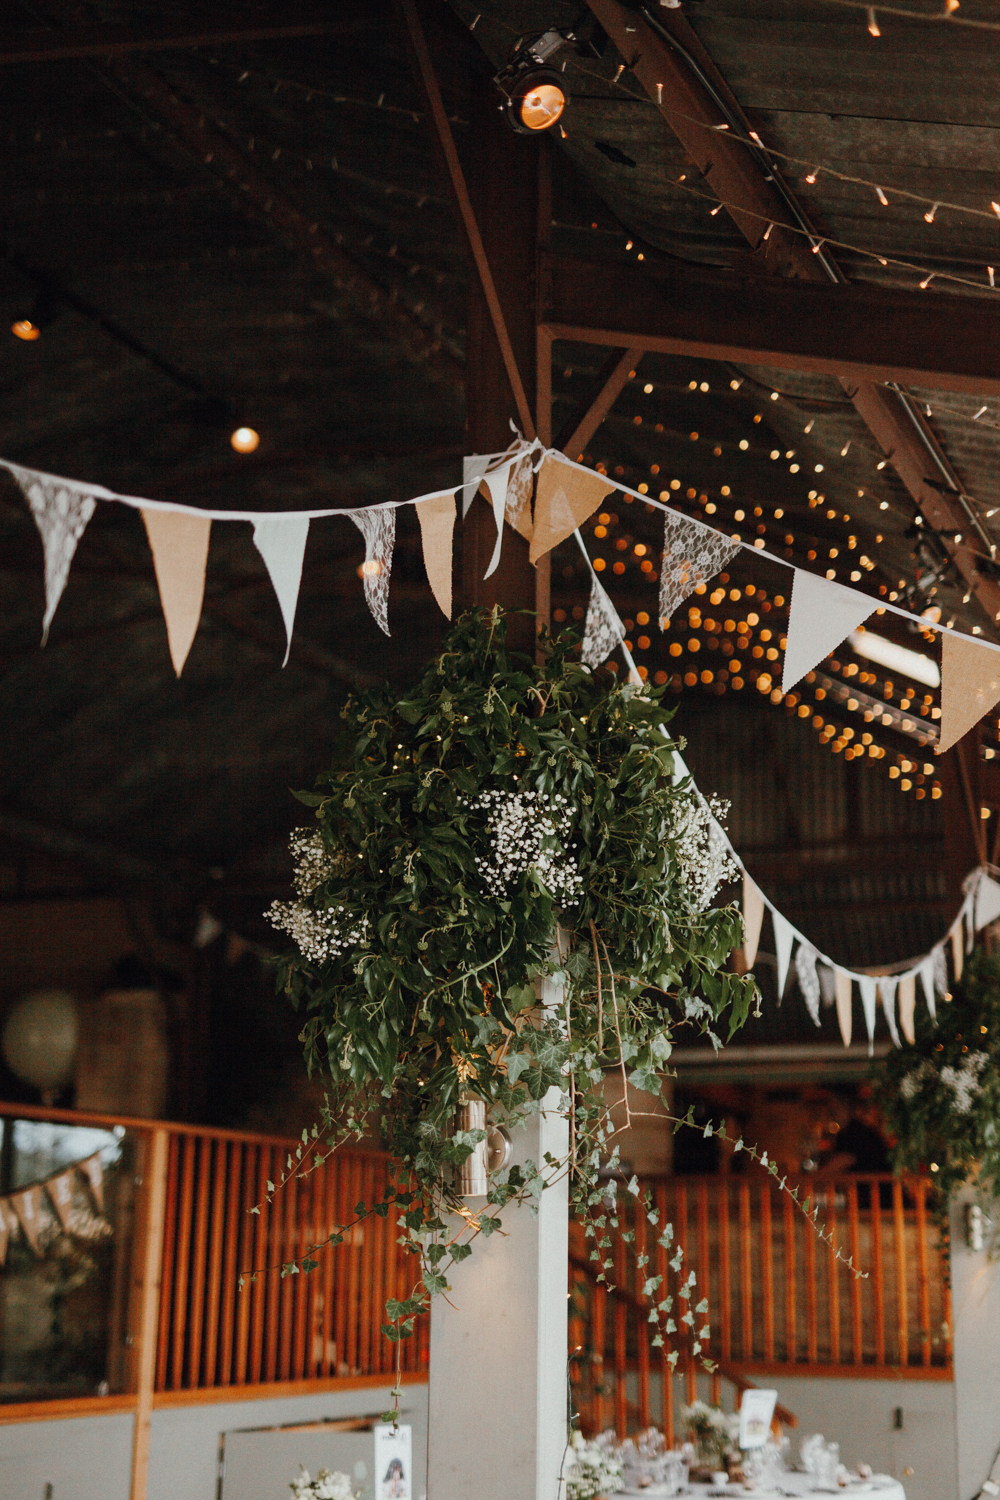 Buntings everywhere were an indispensable decor element as this was a festival inspired wedding